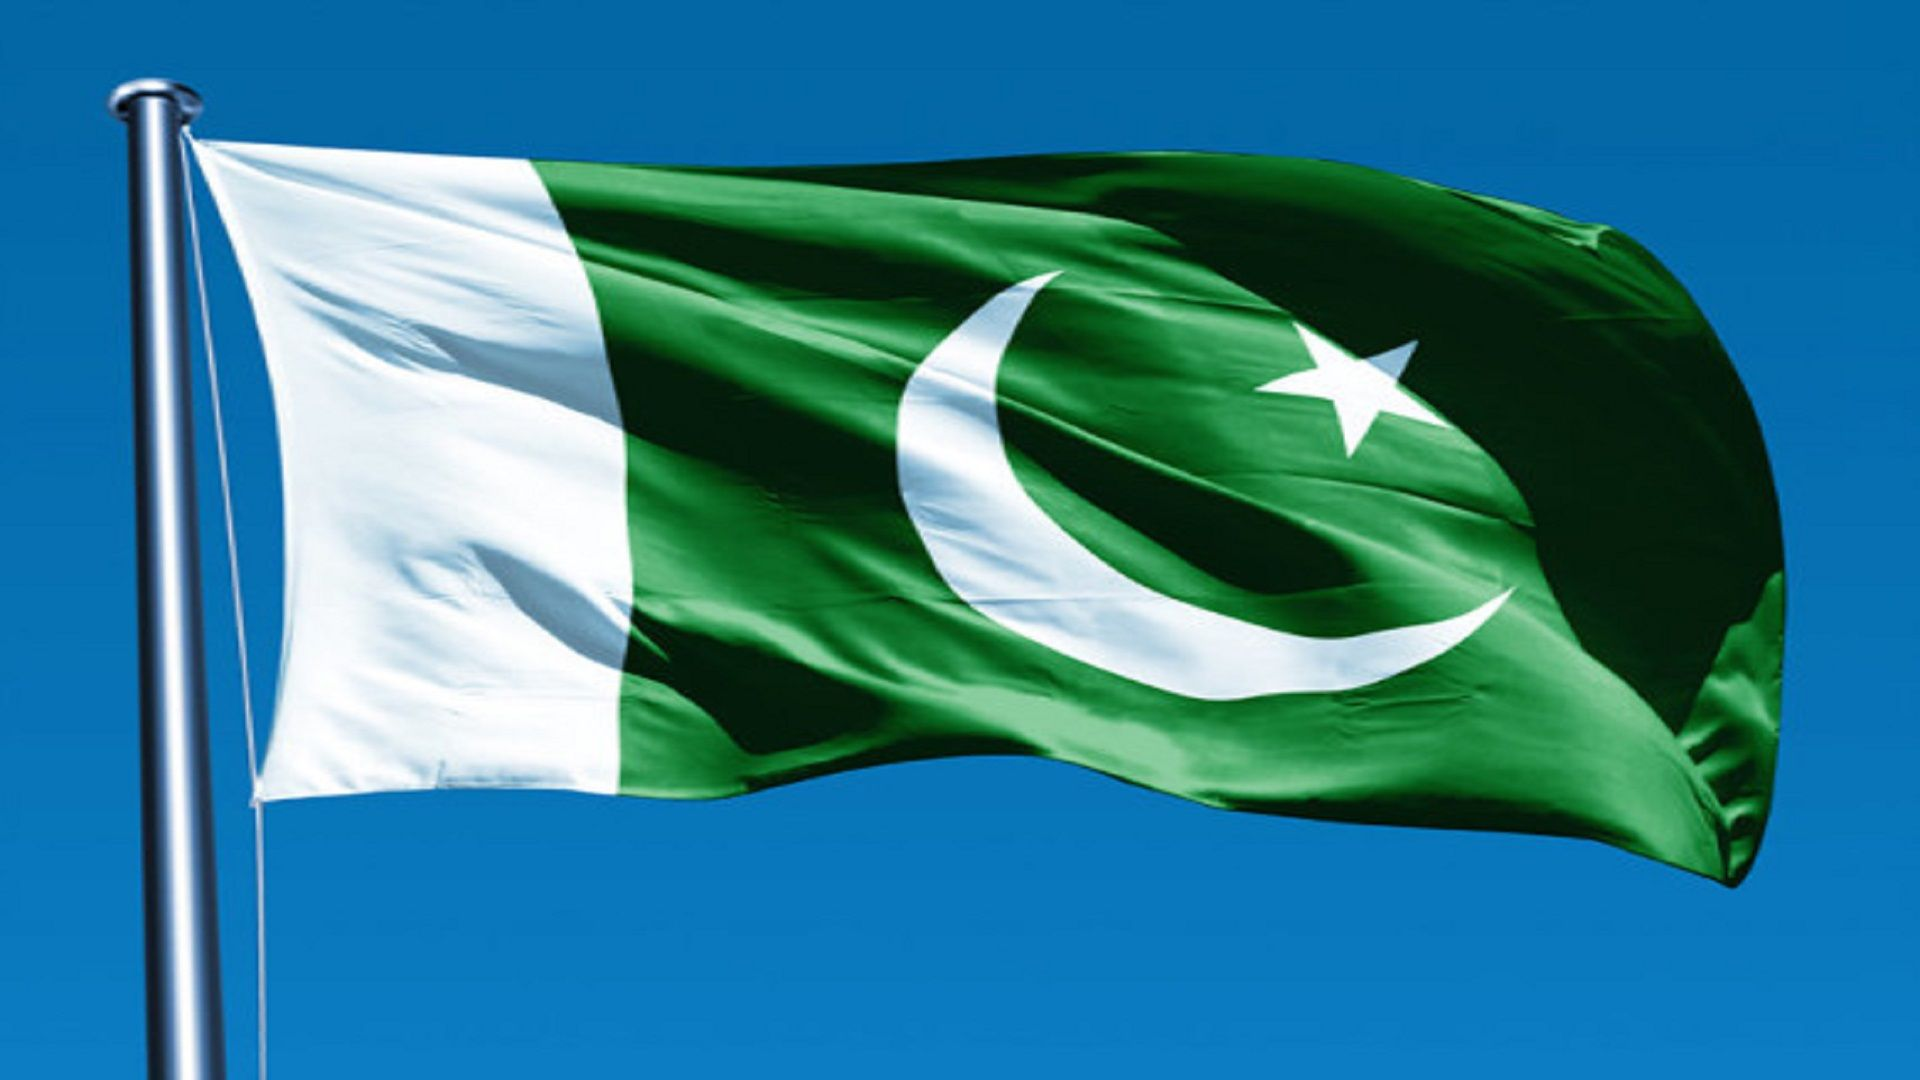 1920x1080 Pakistan Flag Wallpaper 8 - Desktop Wallpapers HD Free ...